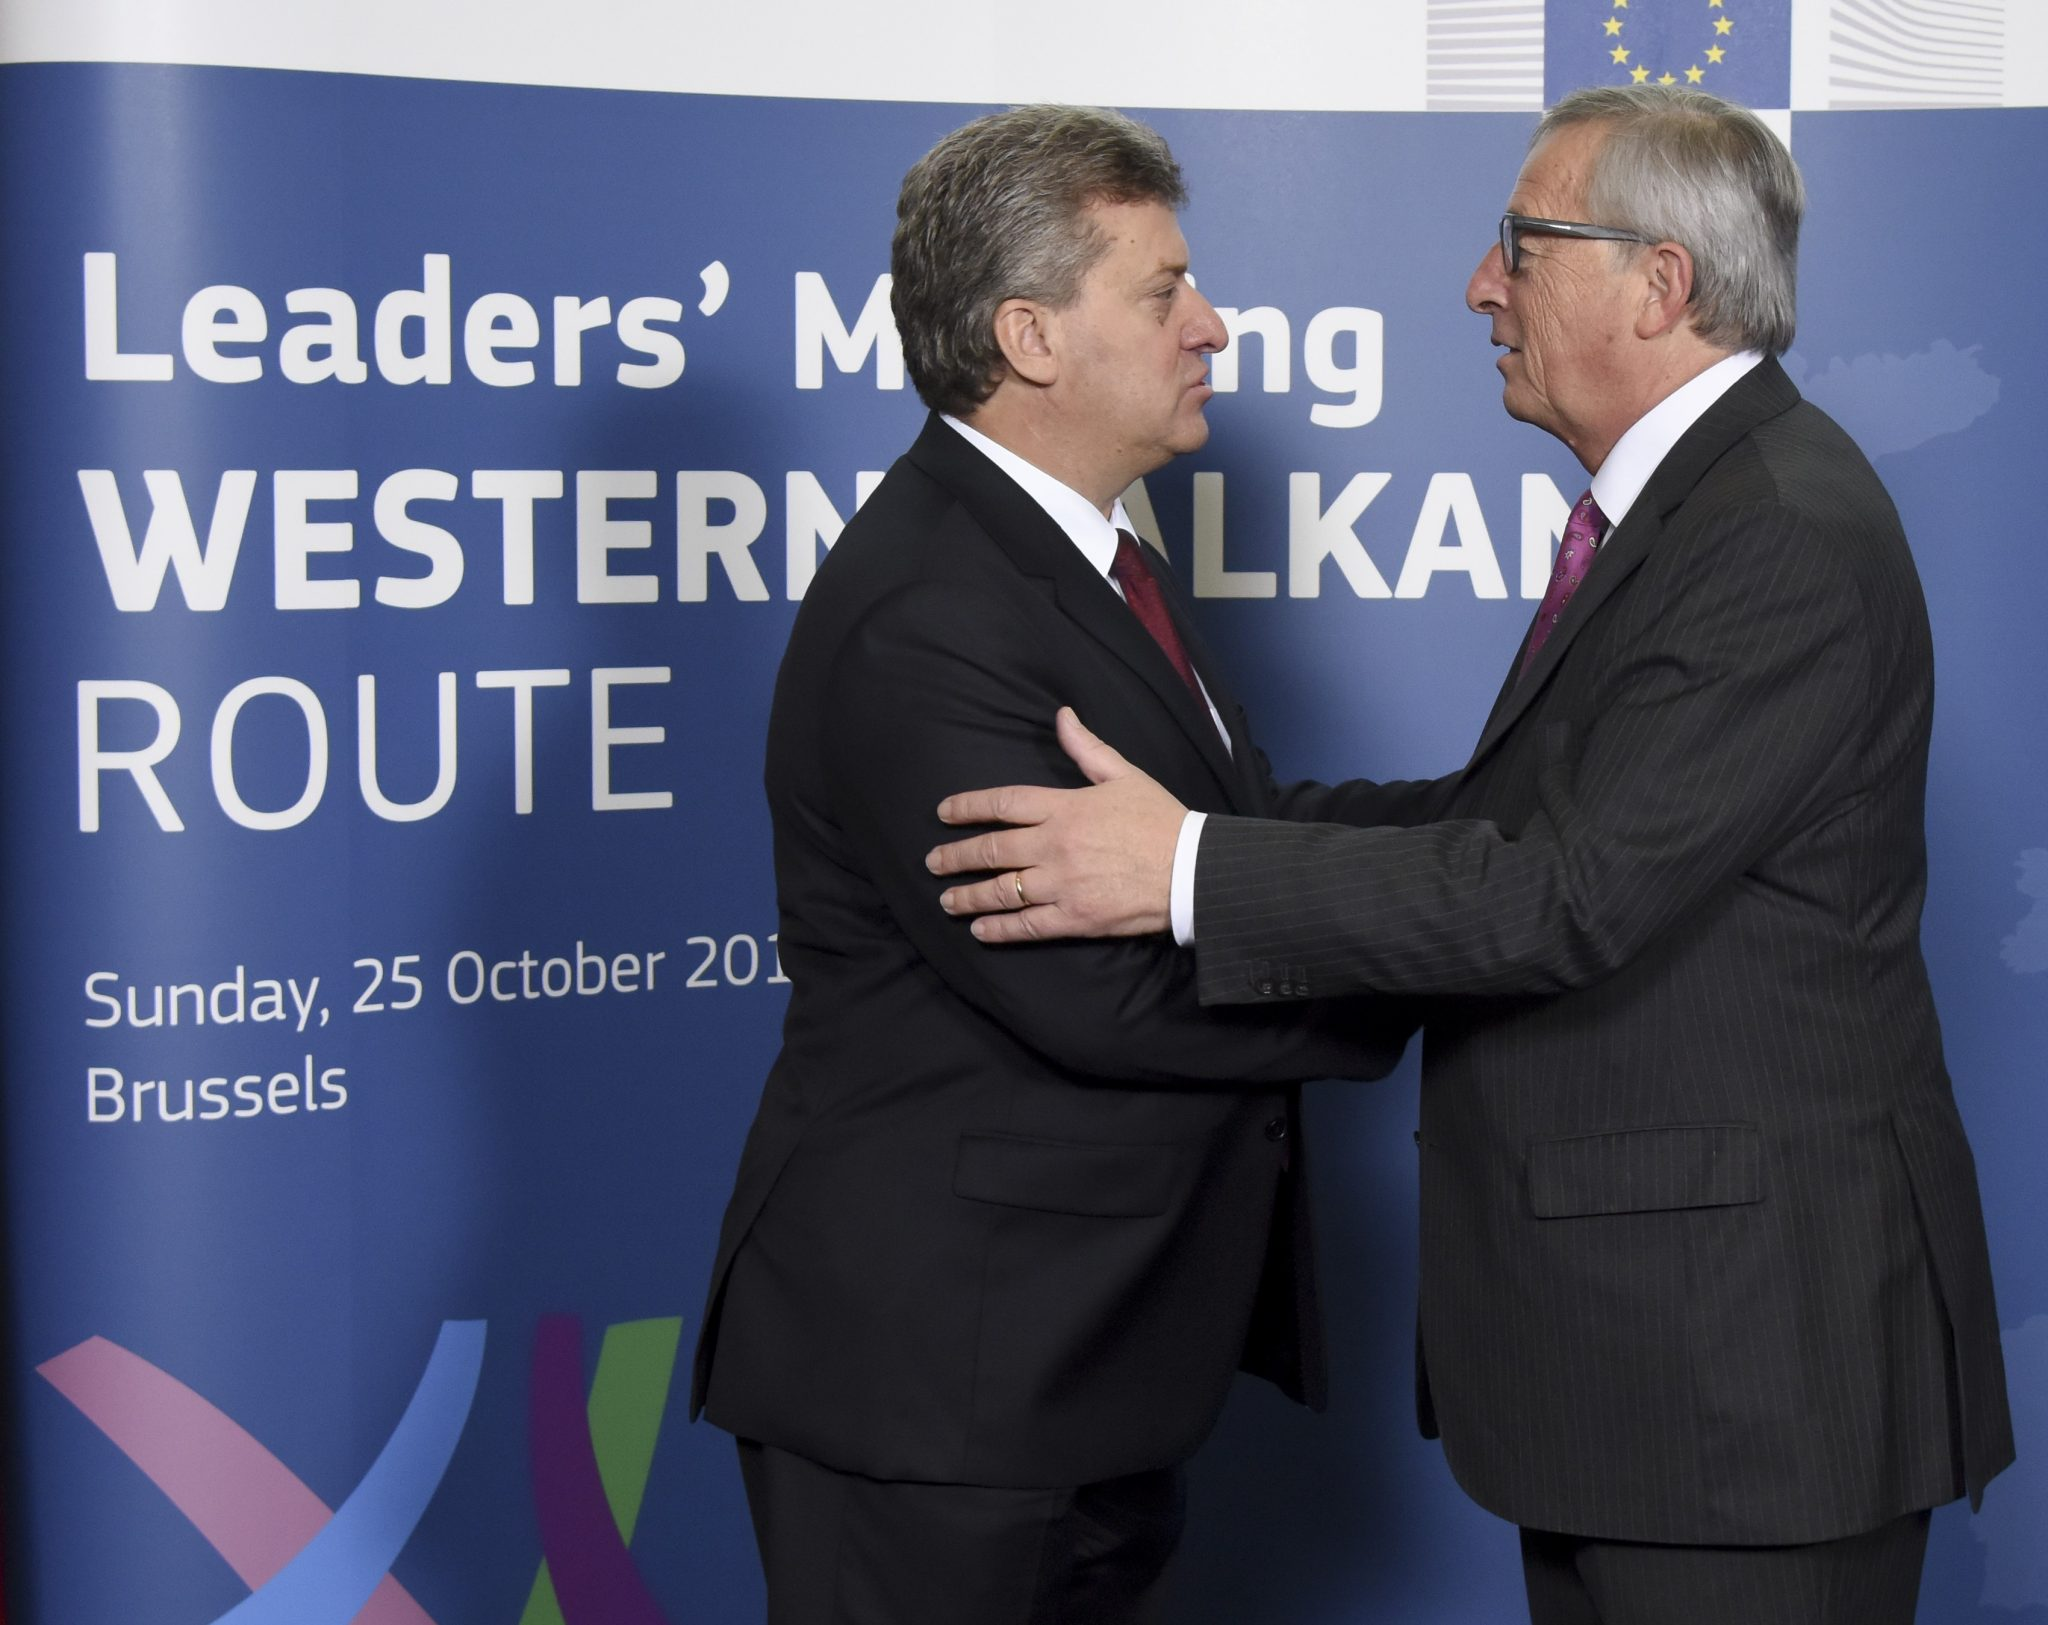 Greeting between Gjorge Ivanov, President of the former Yugoslav Republic of Macedonia, on the left, and Jean-Claude Juncker